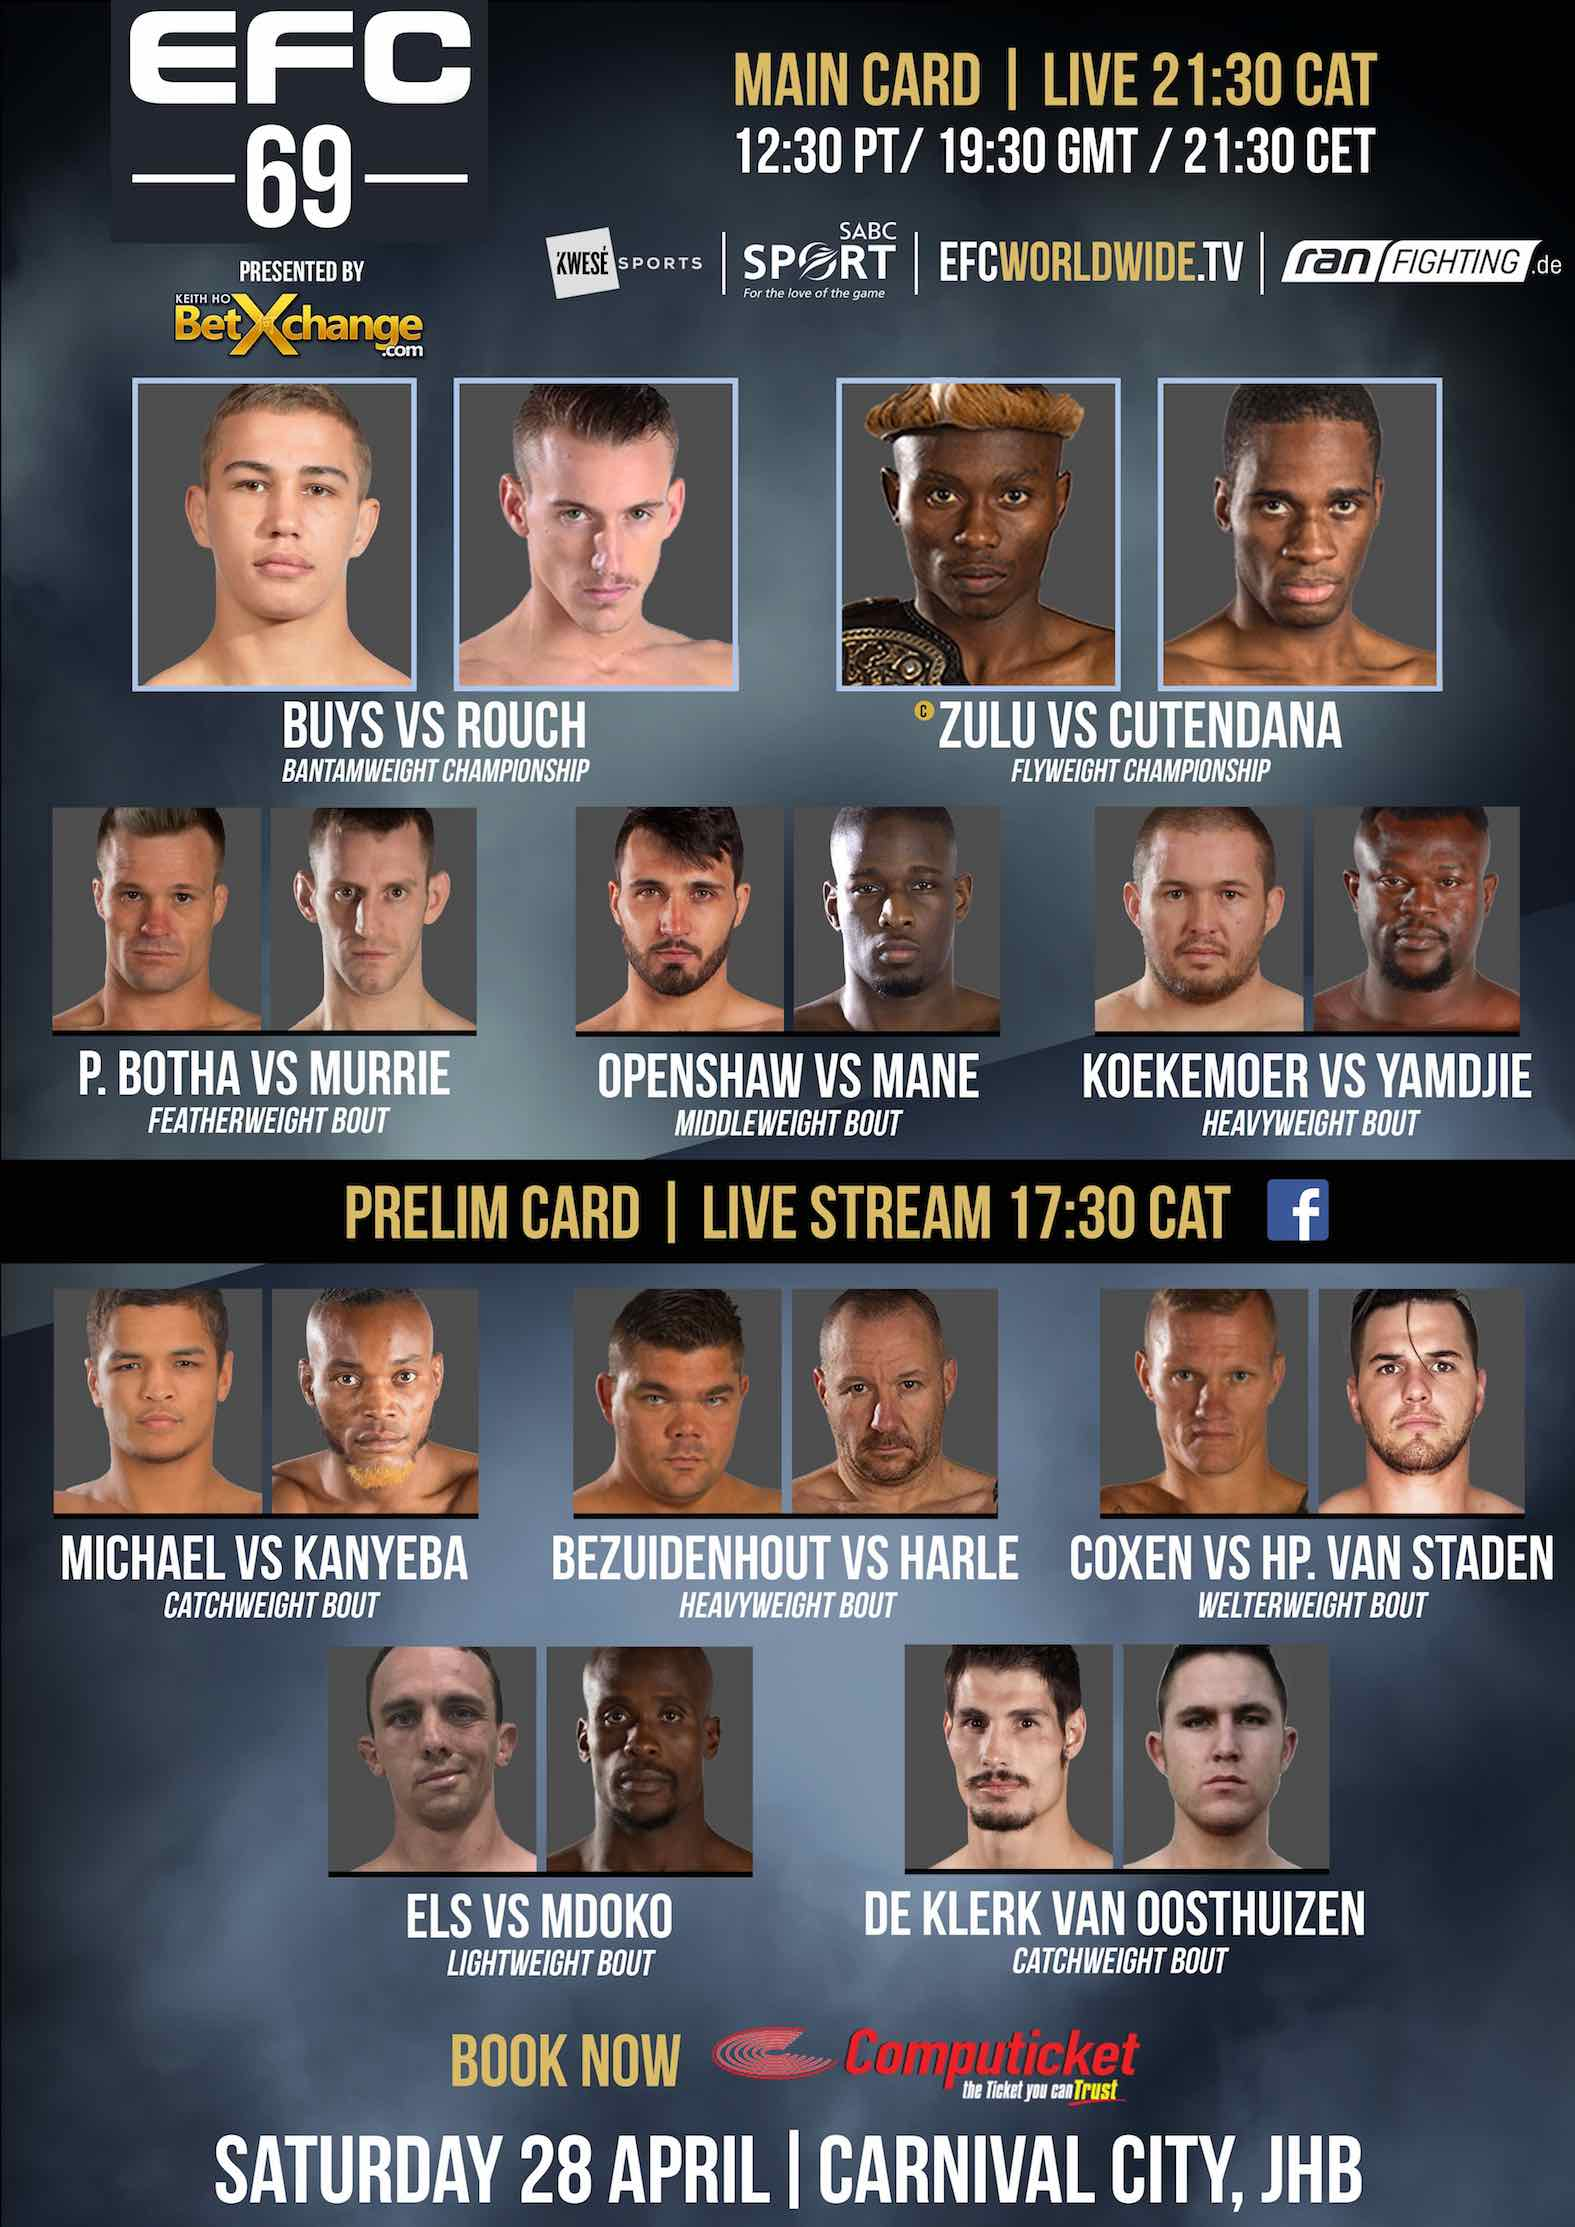 EFC 69 fight card featuring 10 MMA fights